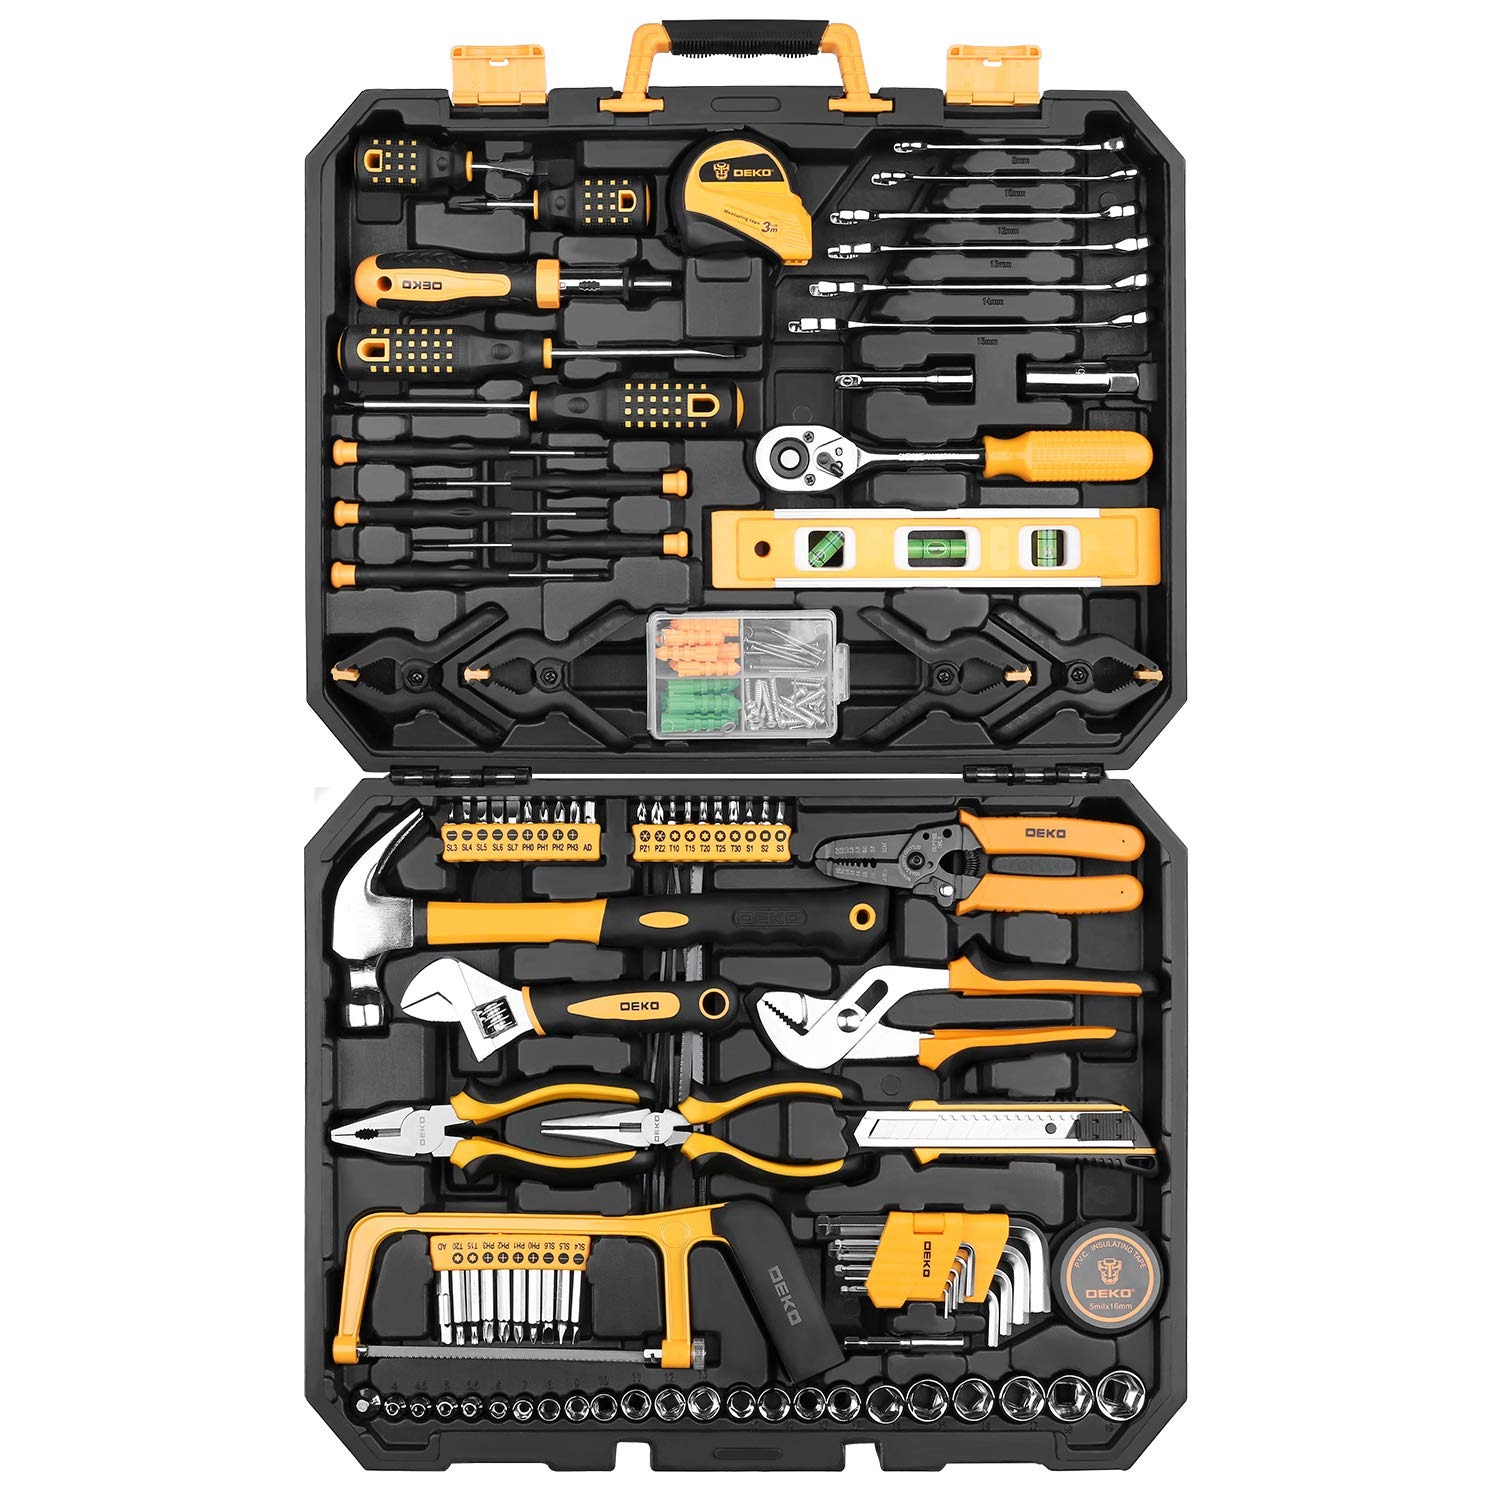 DEKOPRO 168 Piece Socket Wrench Auto Repair Tool Combination Package Mixed Tool Set Hand Tool Kit with Plastic Toolbox Storage Case by DEKOPRO